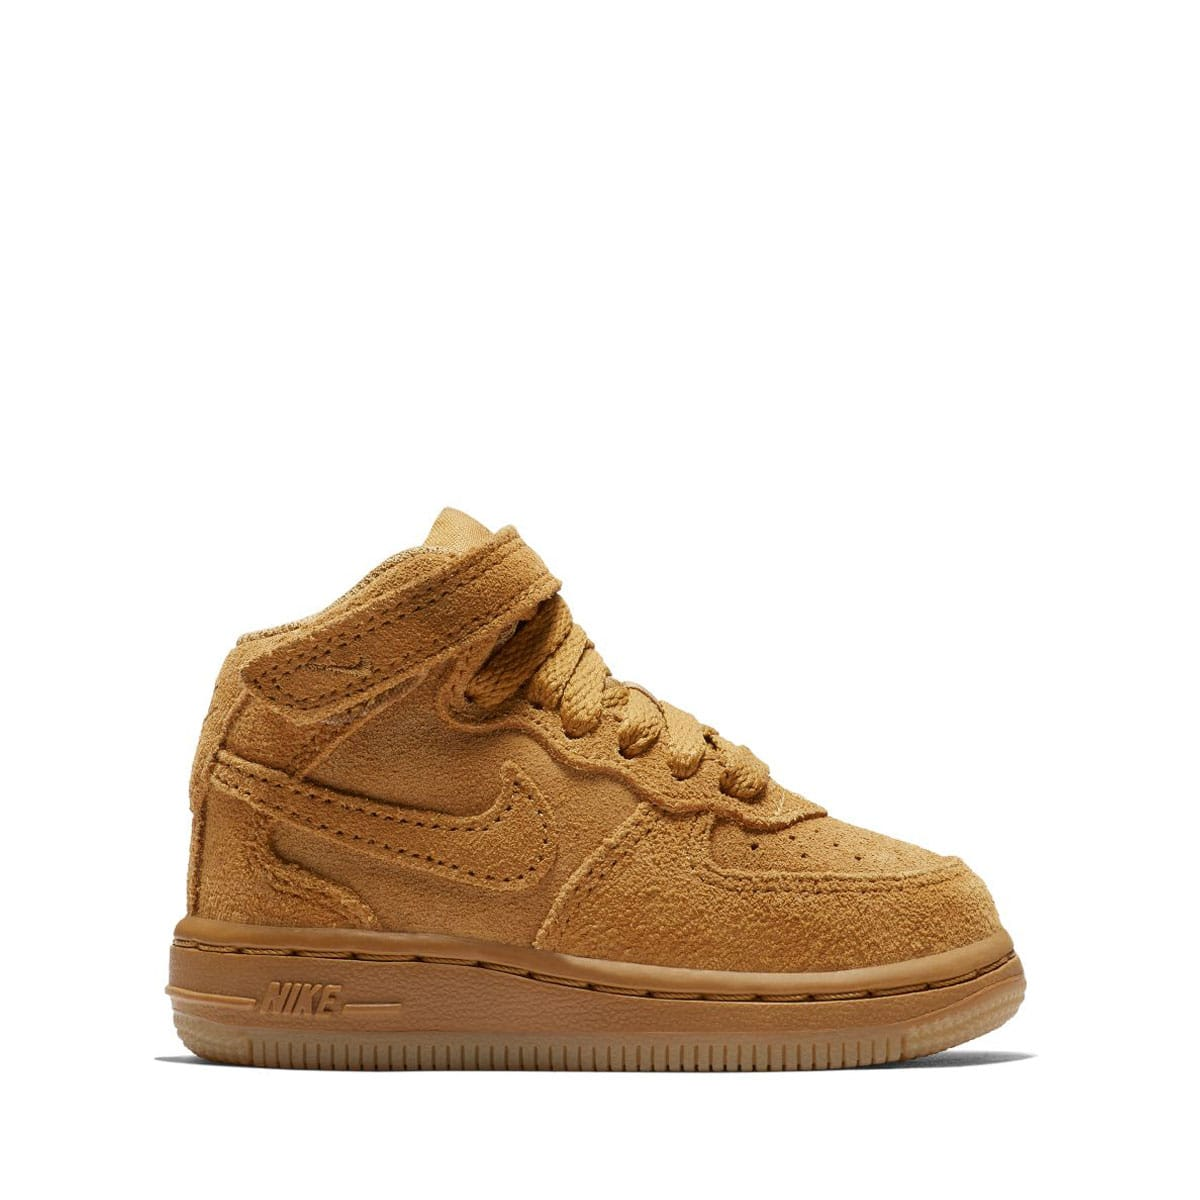 NIKE FORCE 1 MID LV8 (TD) WHEAT/WHEAT-GUM LIGHT BROWN 18HO-I_photo_large